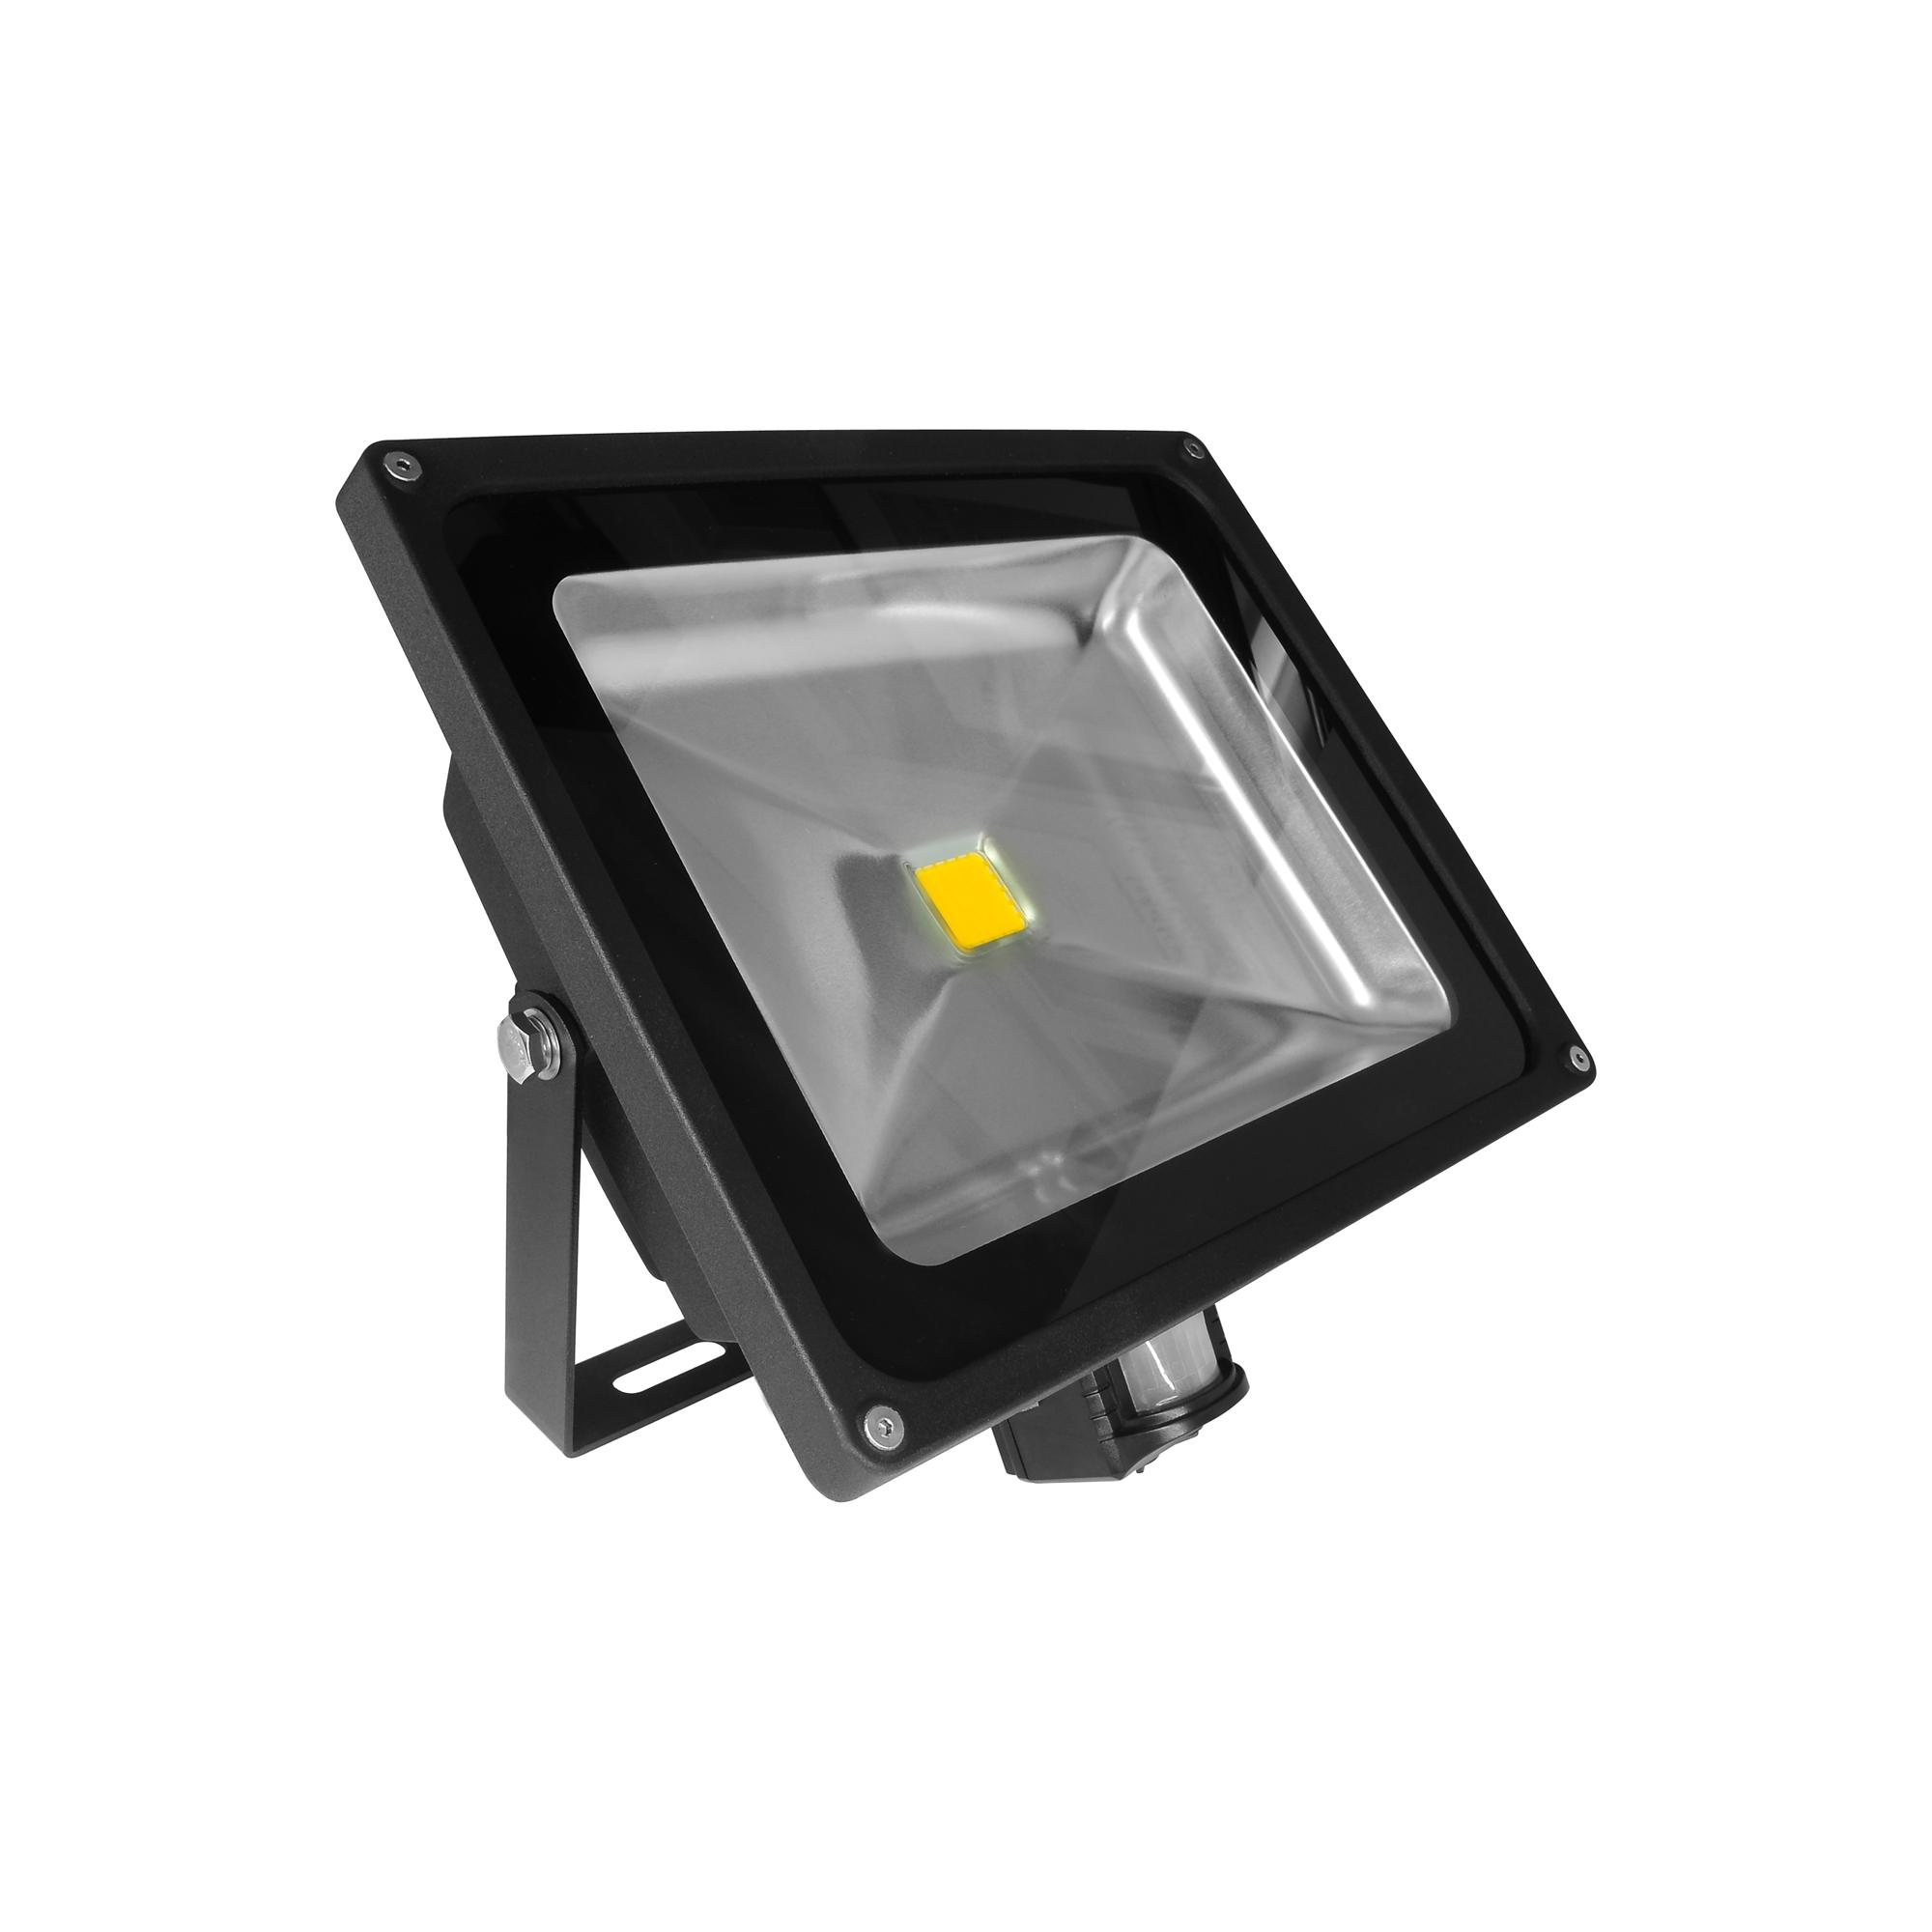 Outdoor Security Lights Wickes: Nighthawk Led Pir Security Light Instructions